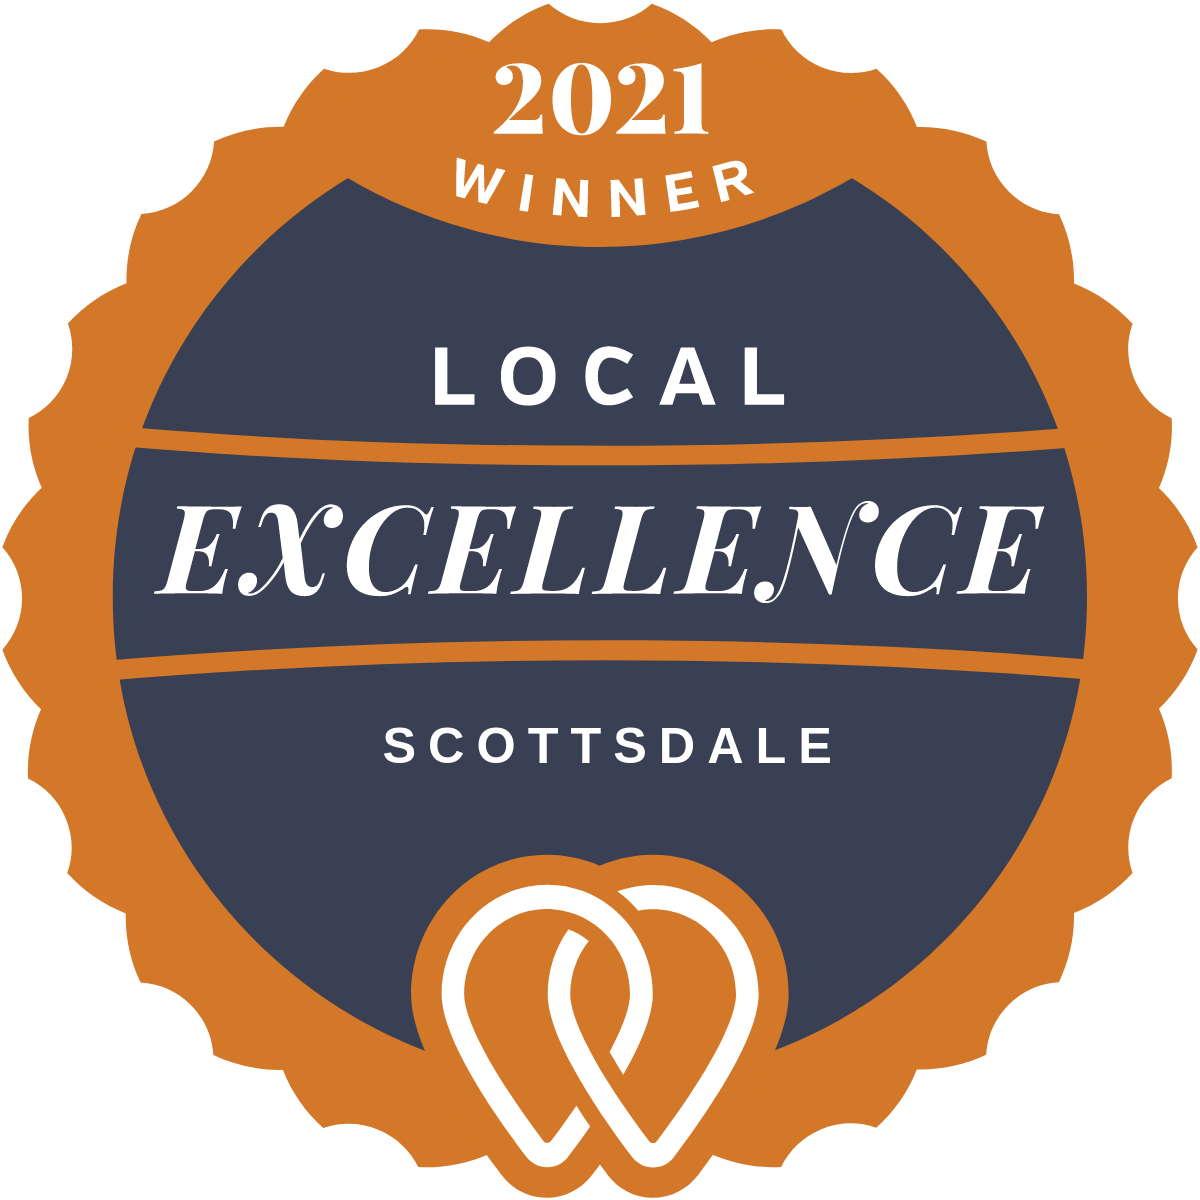 2021 Local Excellence Winner in Scottsdale, AZ